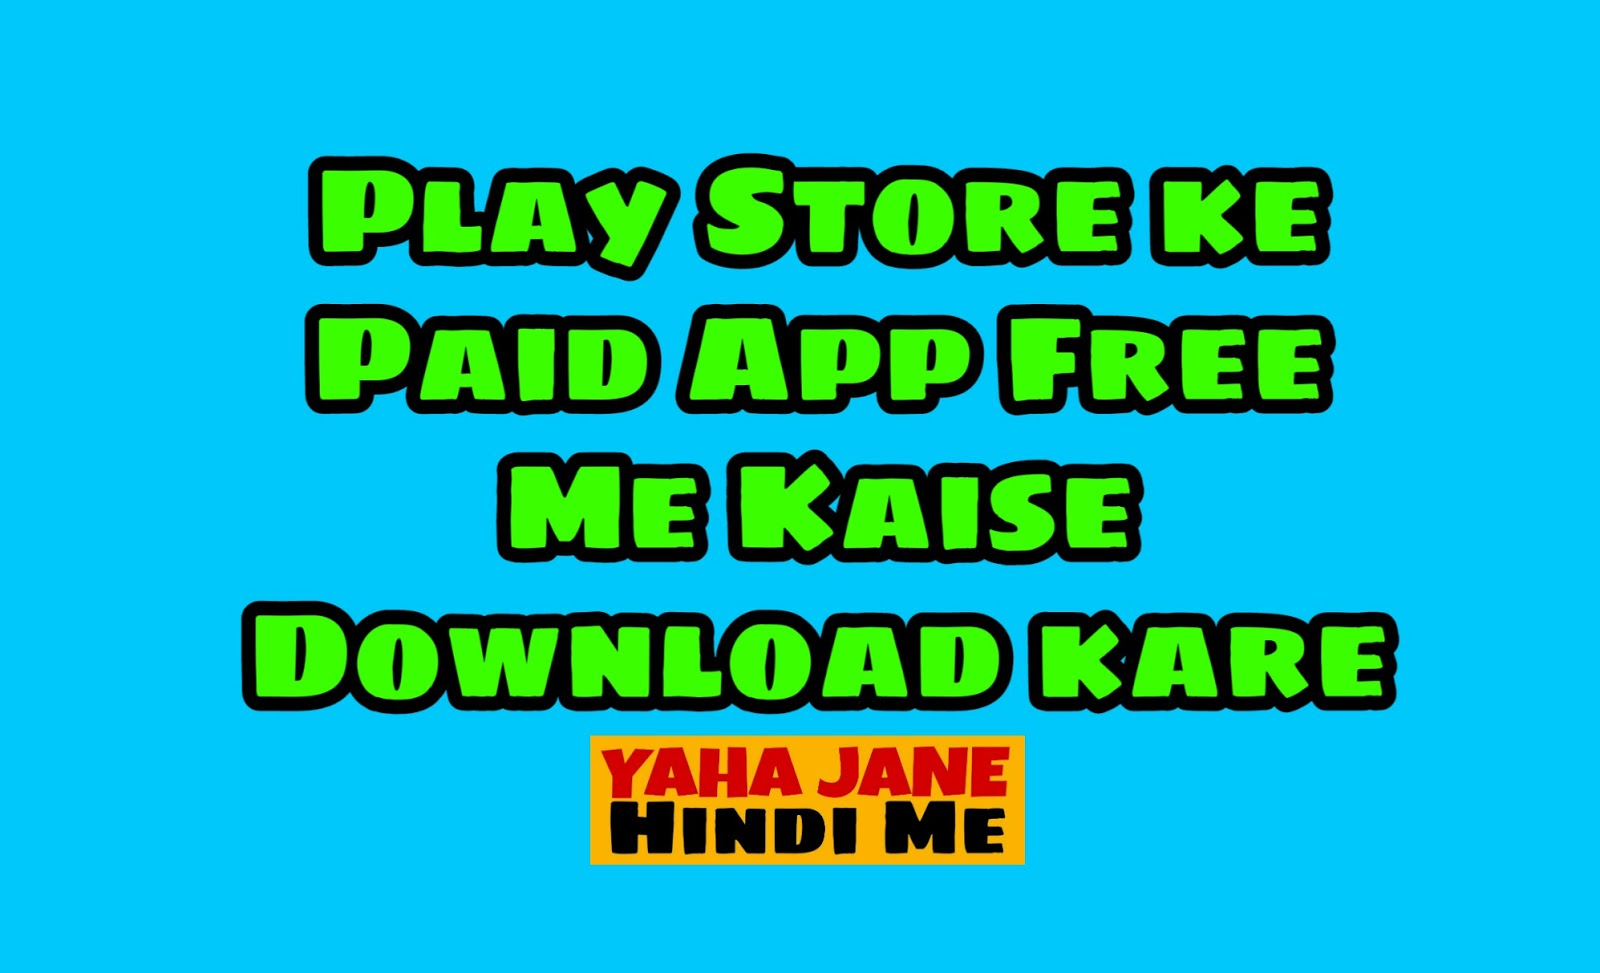 Playstore Karte.Play Store Ke Paid Apps Free Me Kaise Download Kare In Hindi